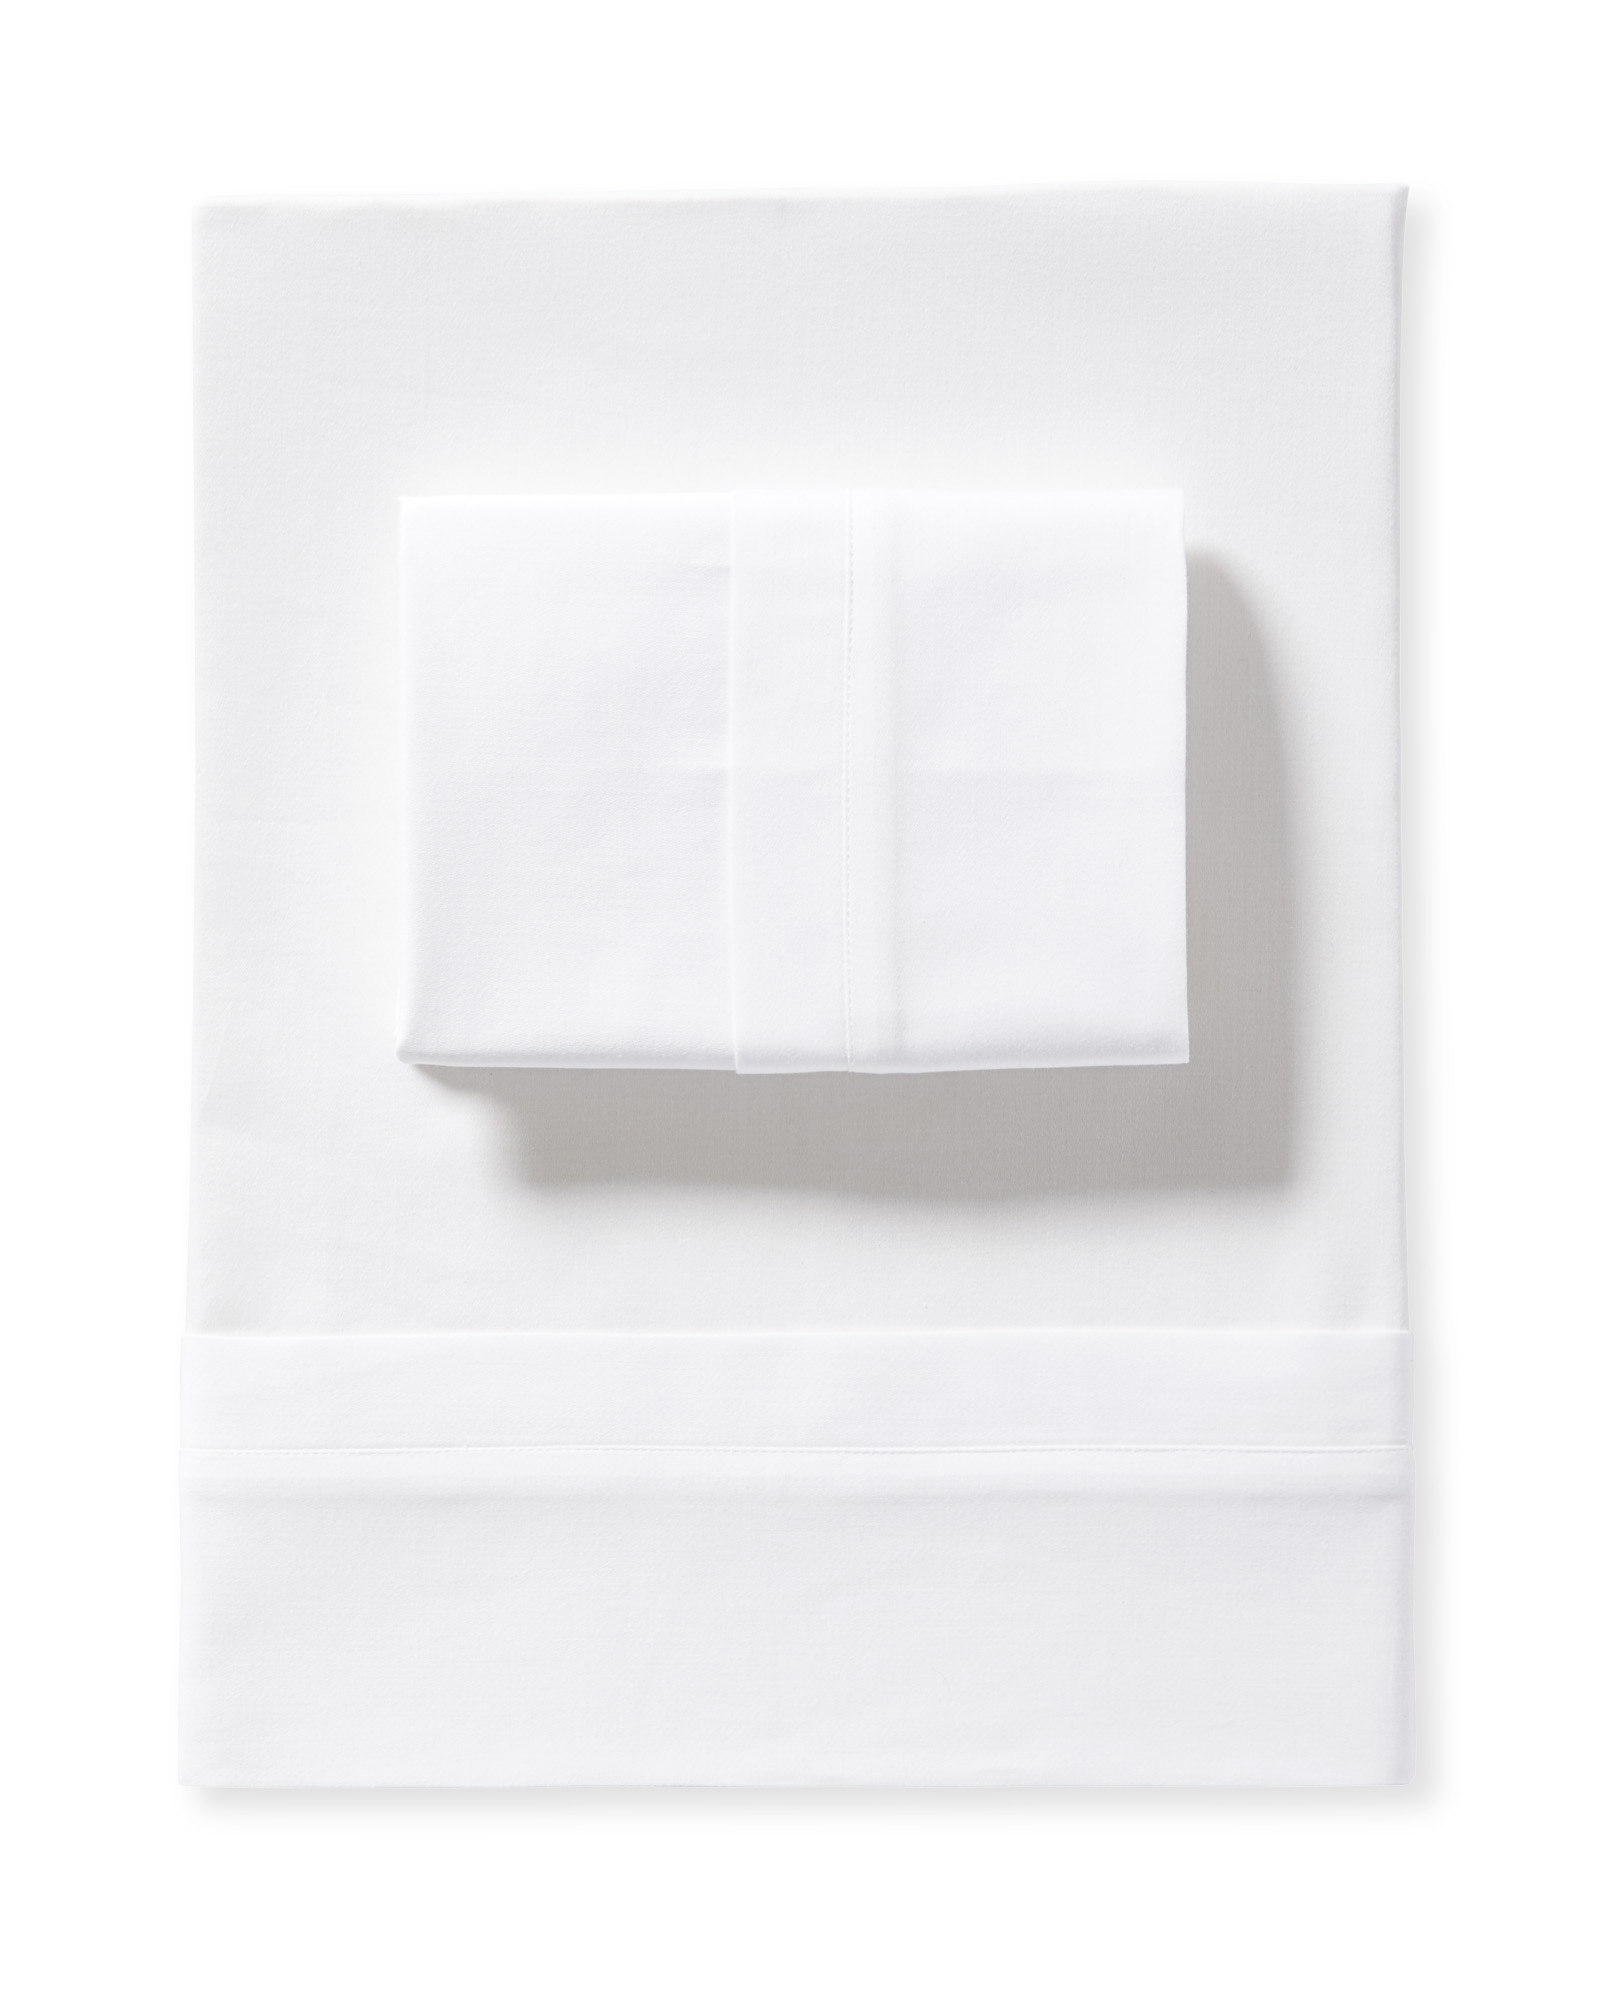 Border Frame Sheet Set, White